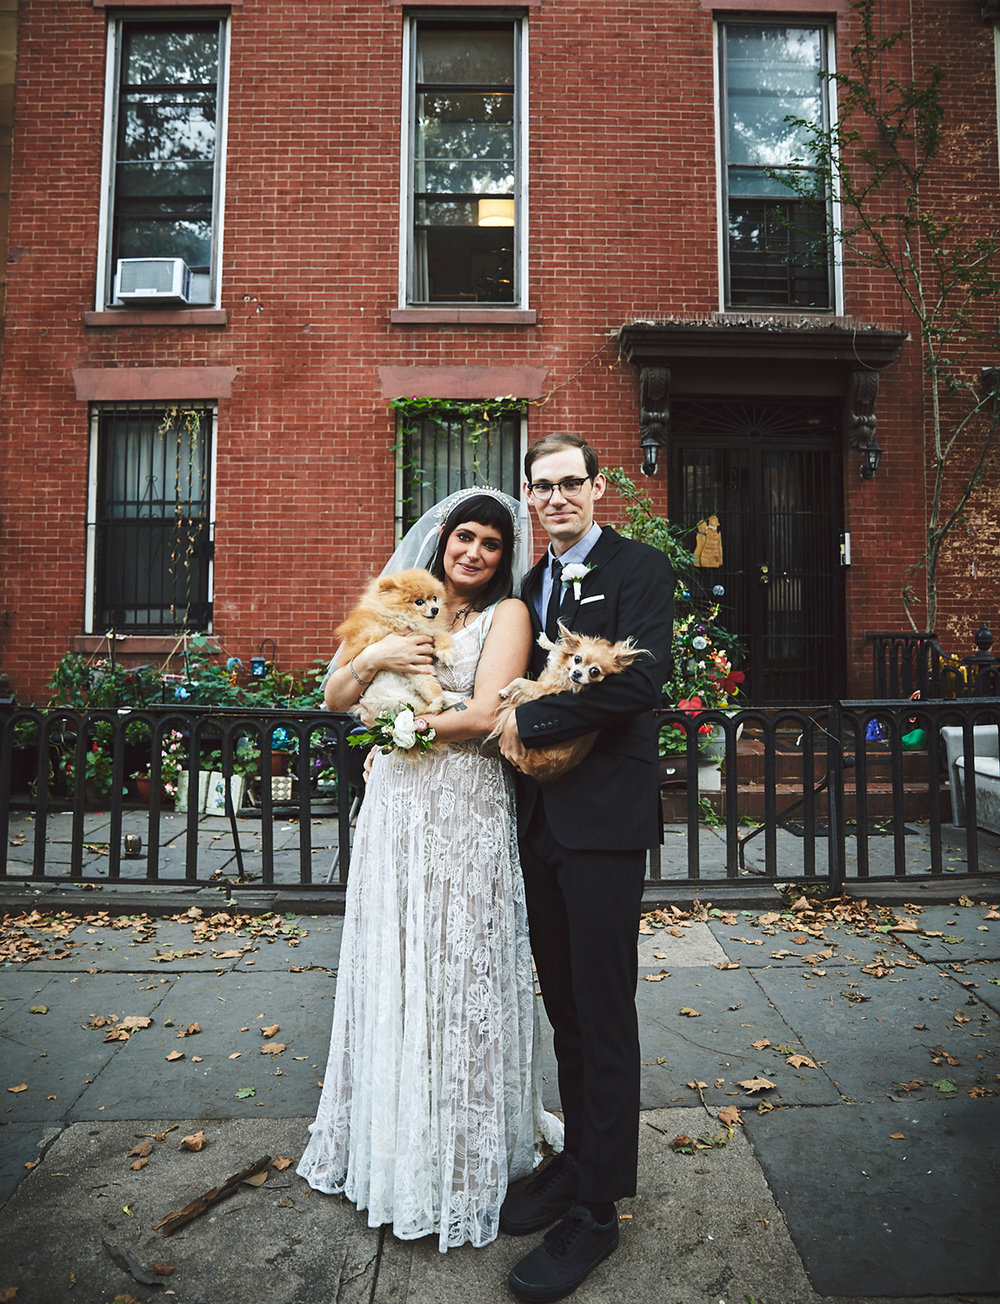 170920_FortGreeneWeddingPhotography_BrooklynWeddingPhotographer_By_BriJohnsonWeddings_0002.jpg